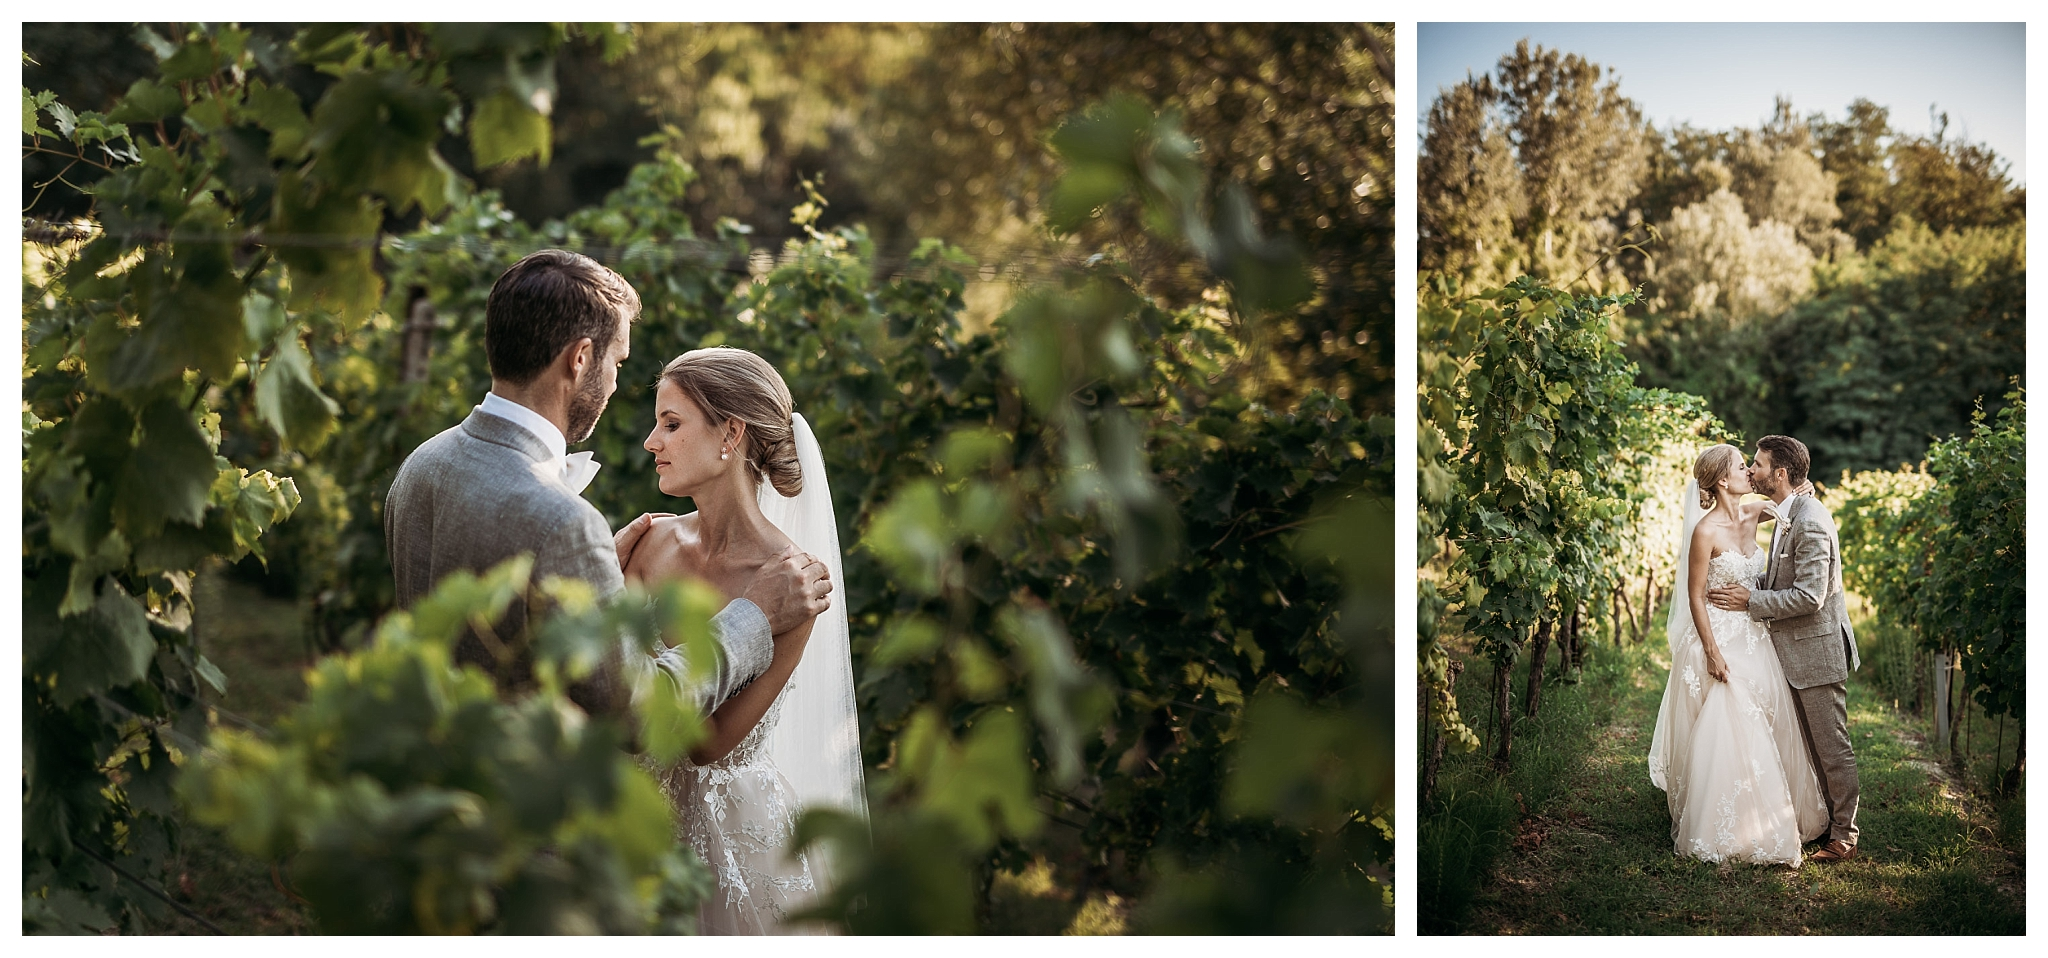 Wedding couple in the vineyards for their wedding in Italy